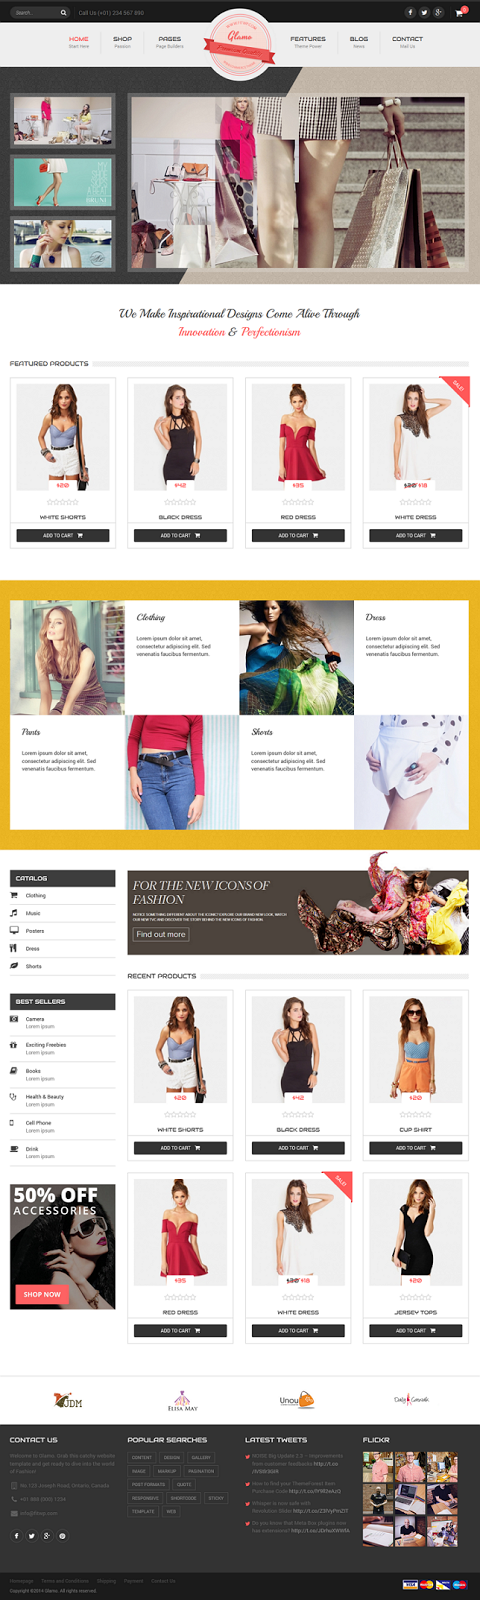 Free Responsive WordPress eCommerce Theme